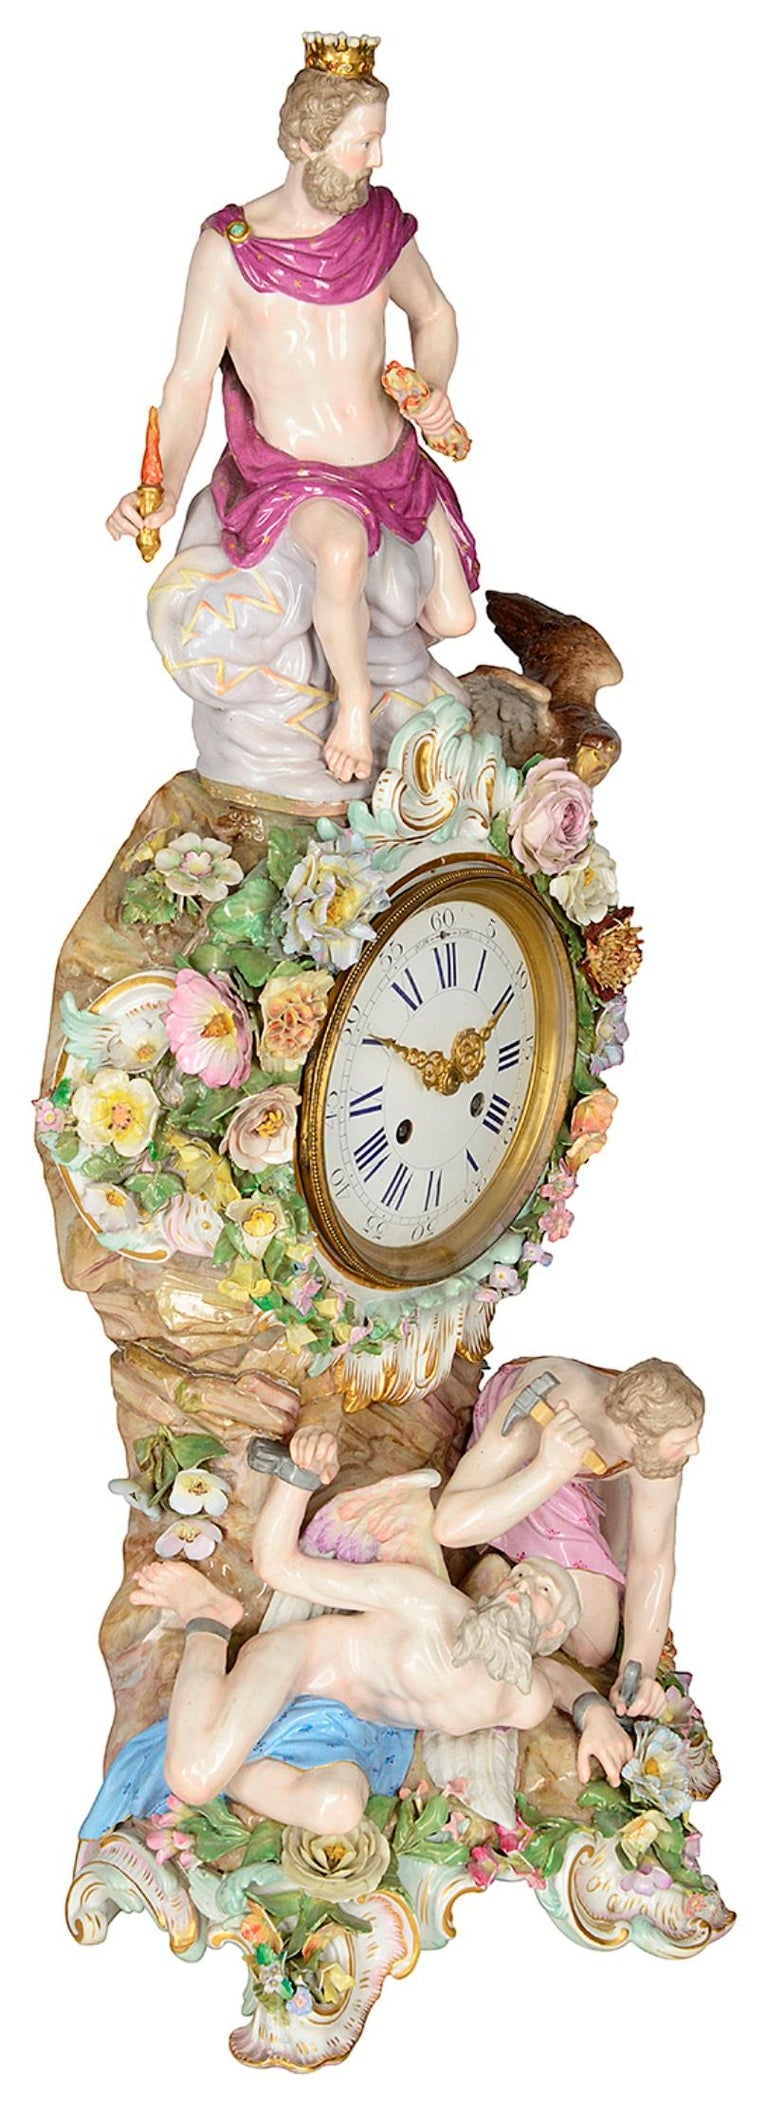 A fine quality late 19th century Meissen Porcelain mantel clock, having Zeus seated above the white enamel clock face, with garlands of flowers surrounding; on the base, Cronus and Hephaestus. Blue crossed sword mark to the base.